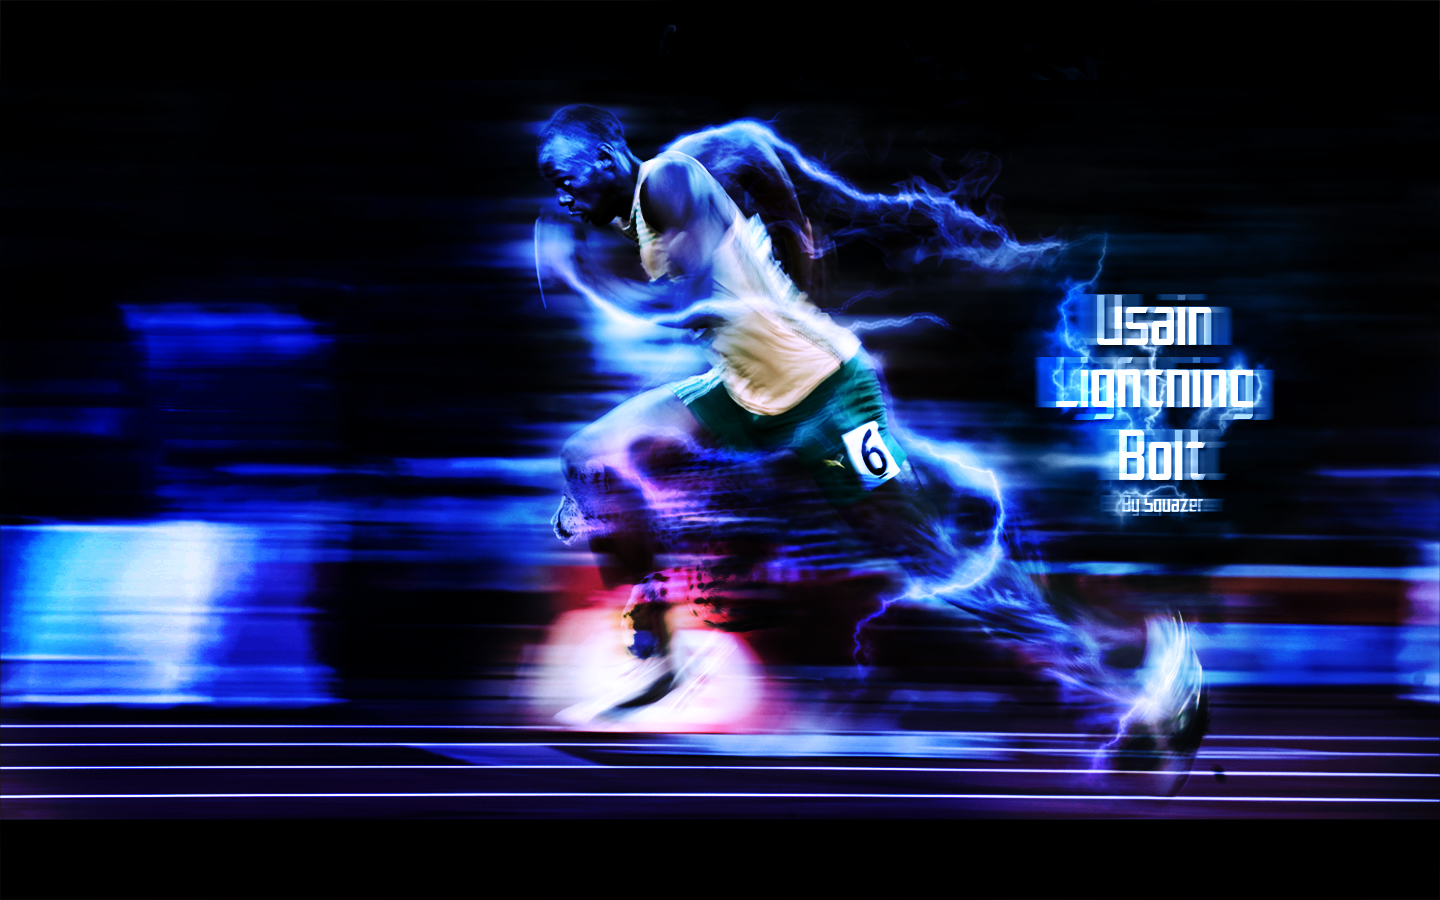 Usain-Lightning-Bolt-HD-Wallpaper